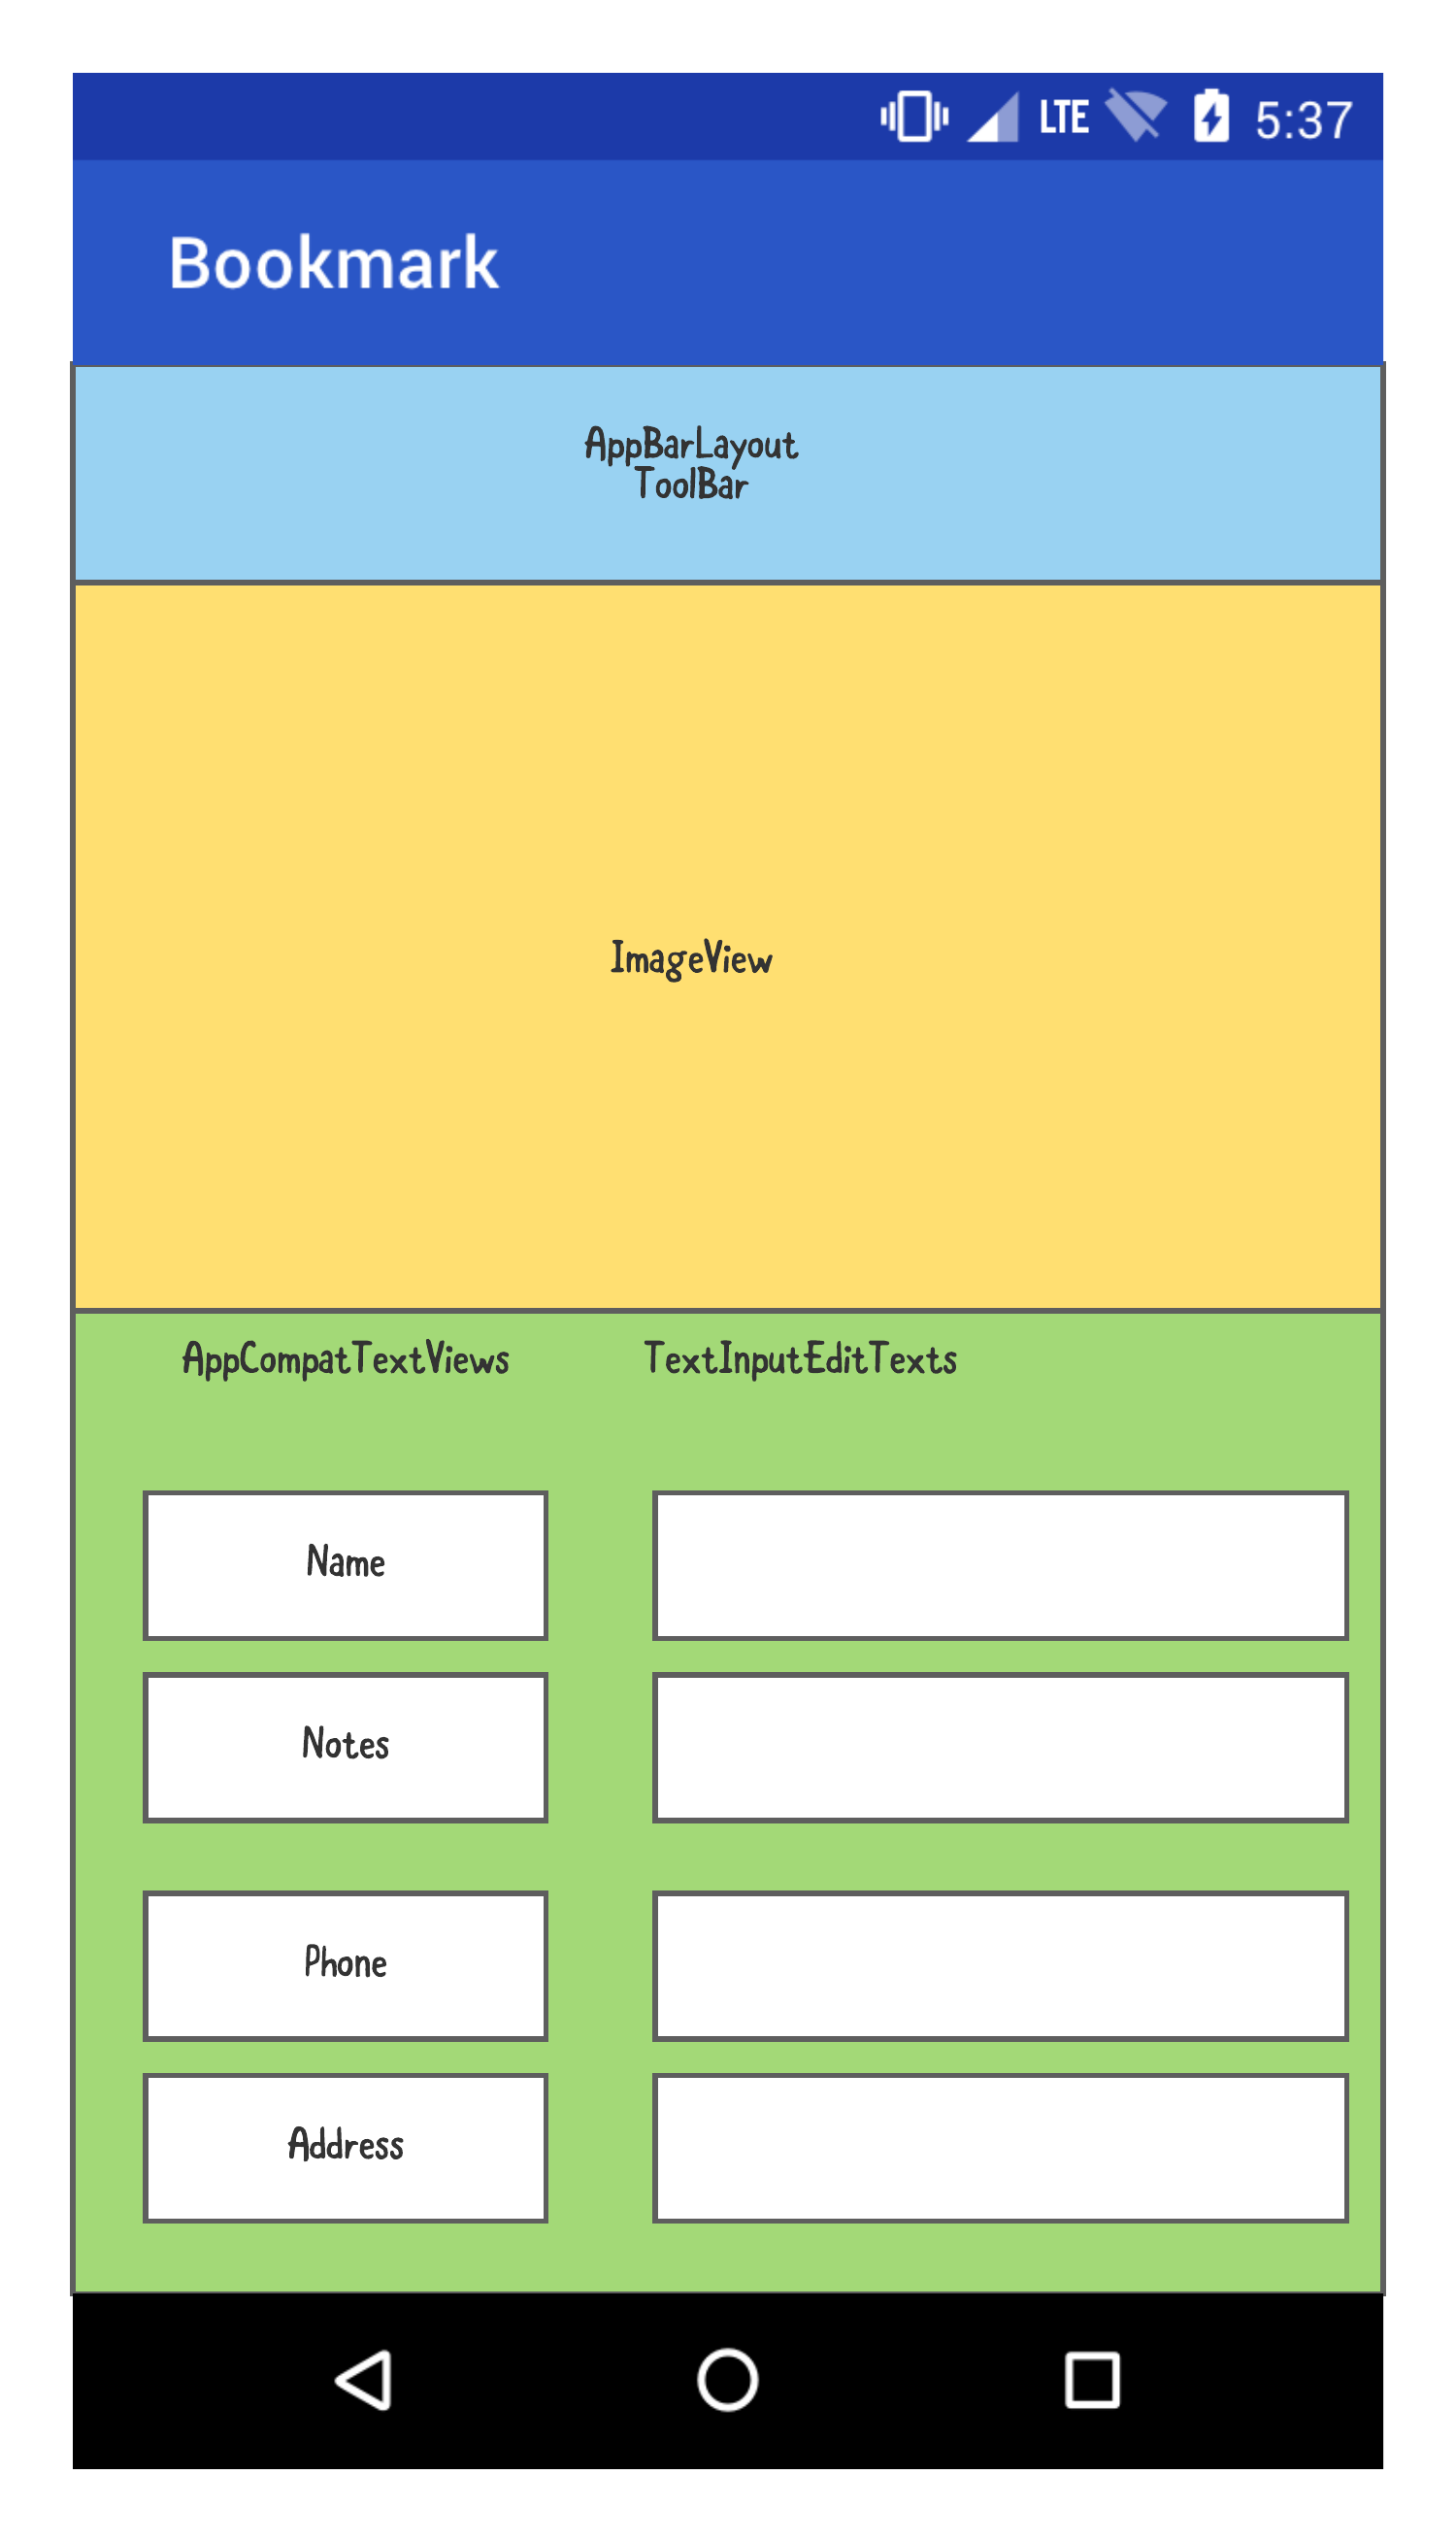 The Bookmark Edit Layout